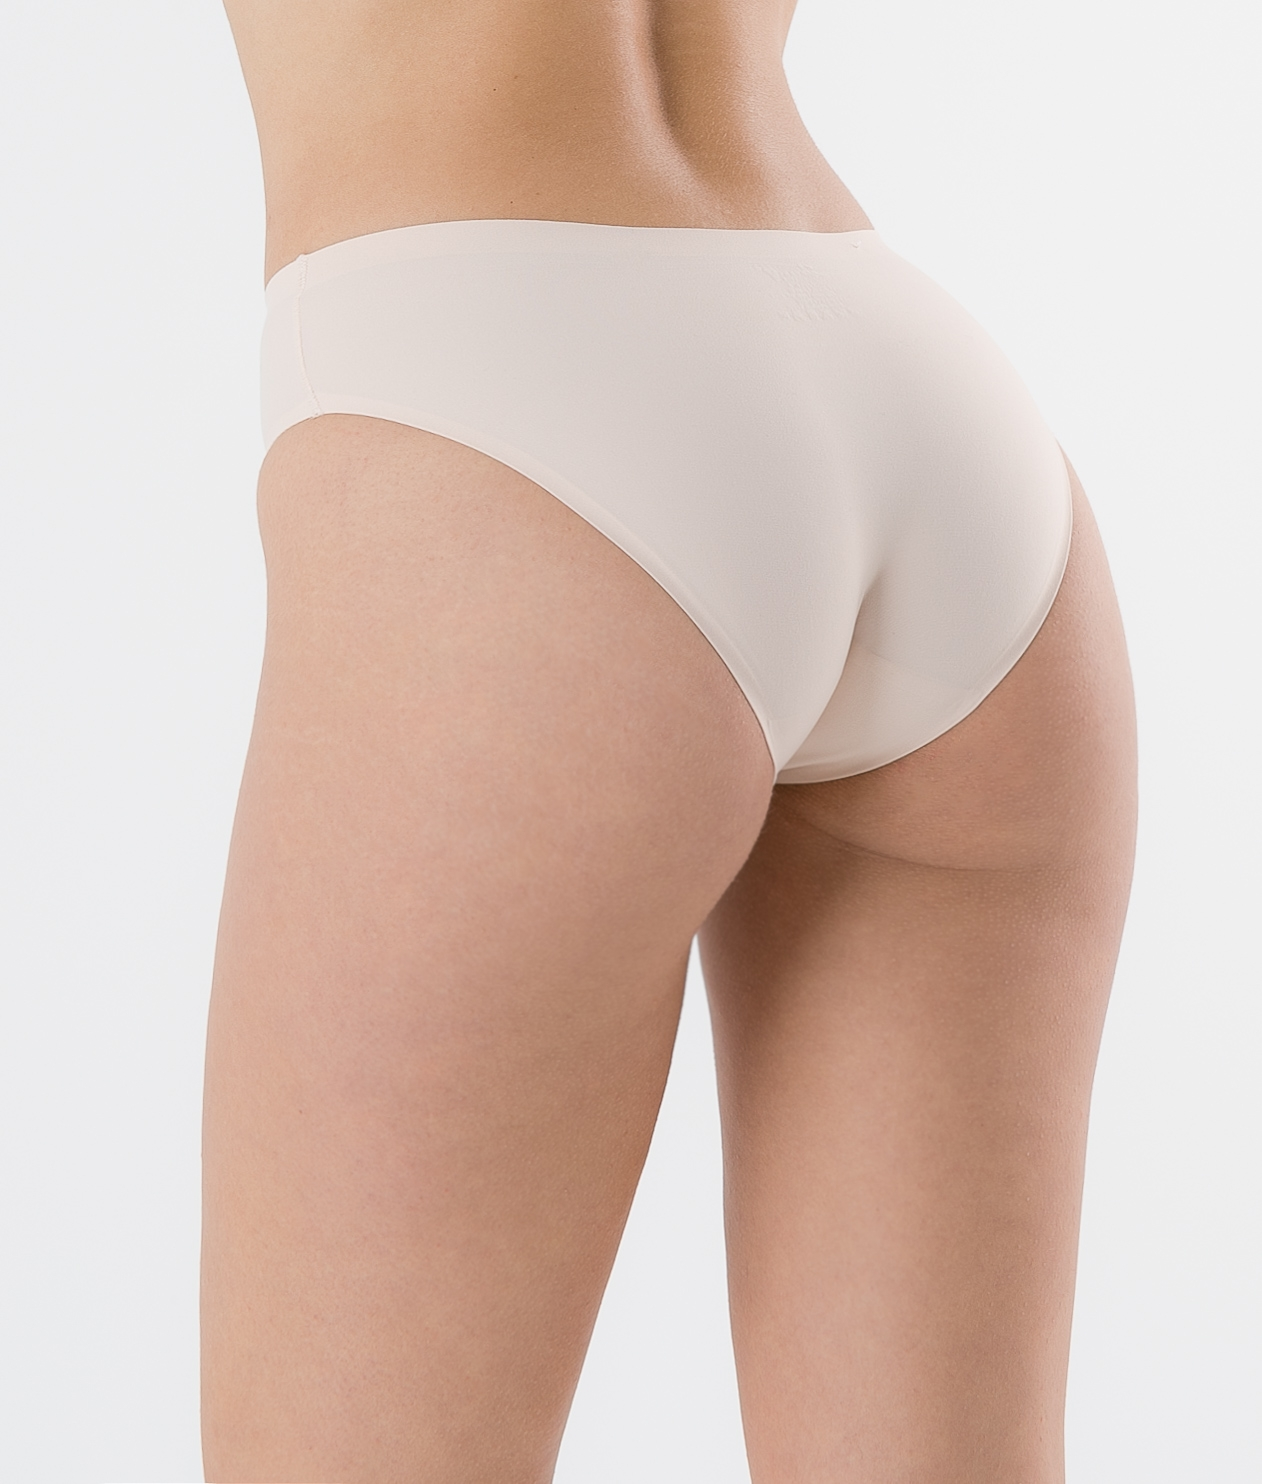 knickers Cospil - Beige